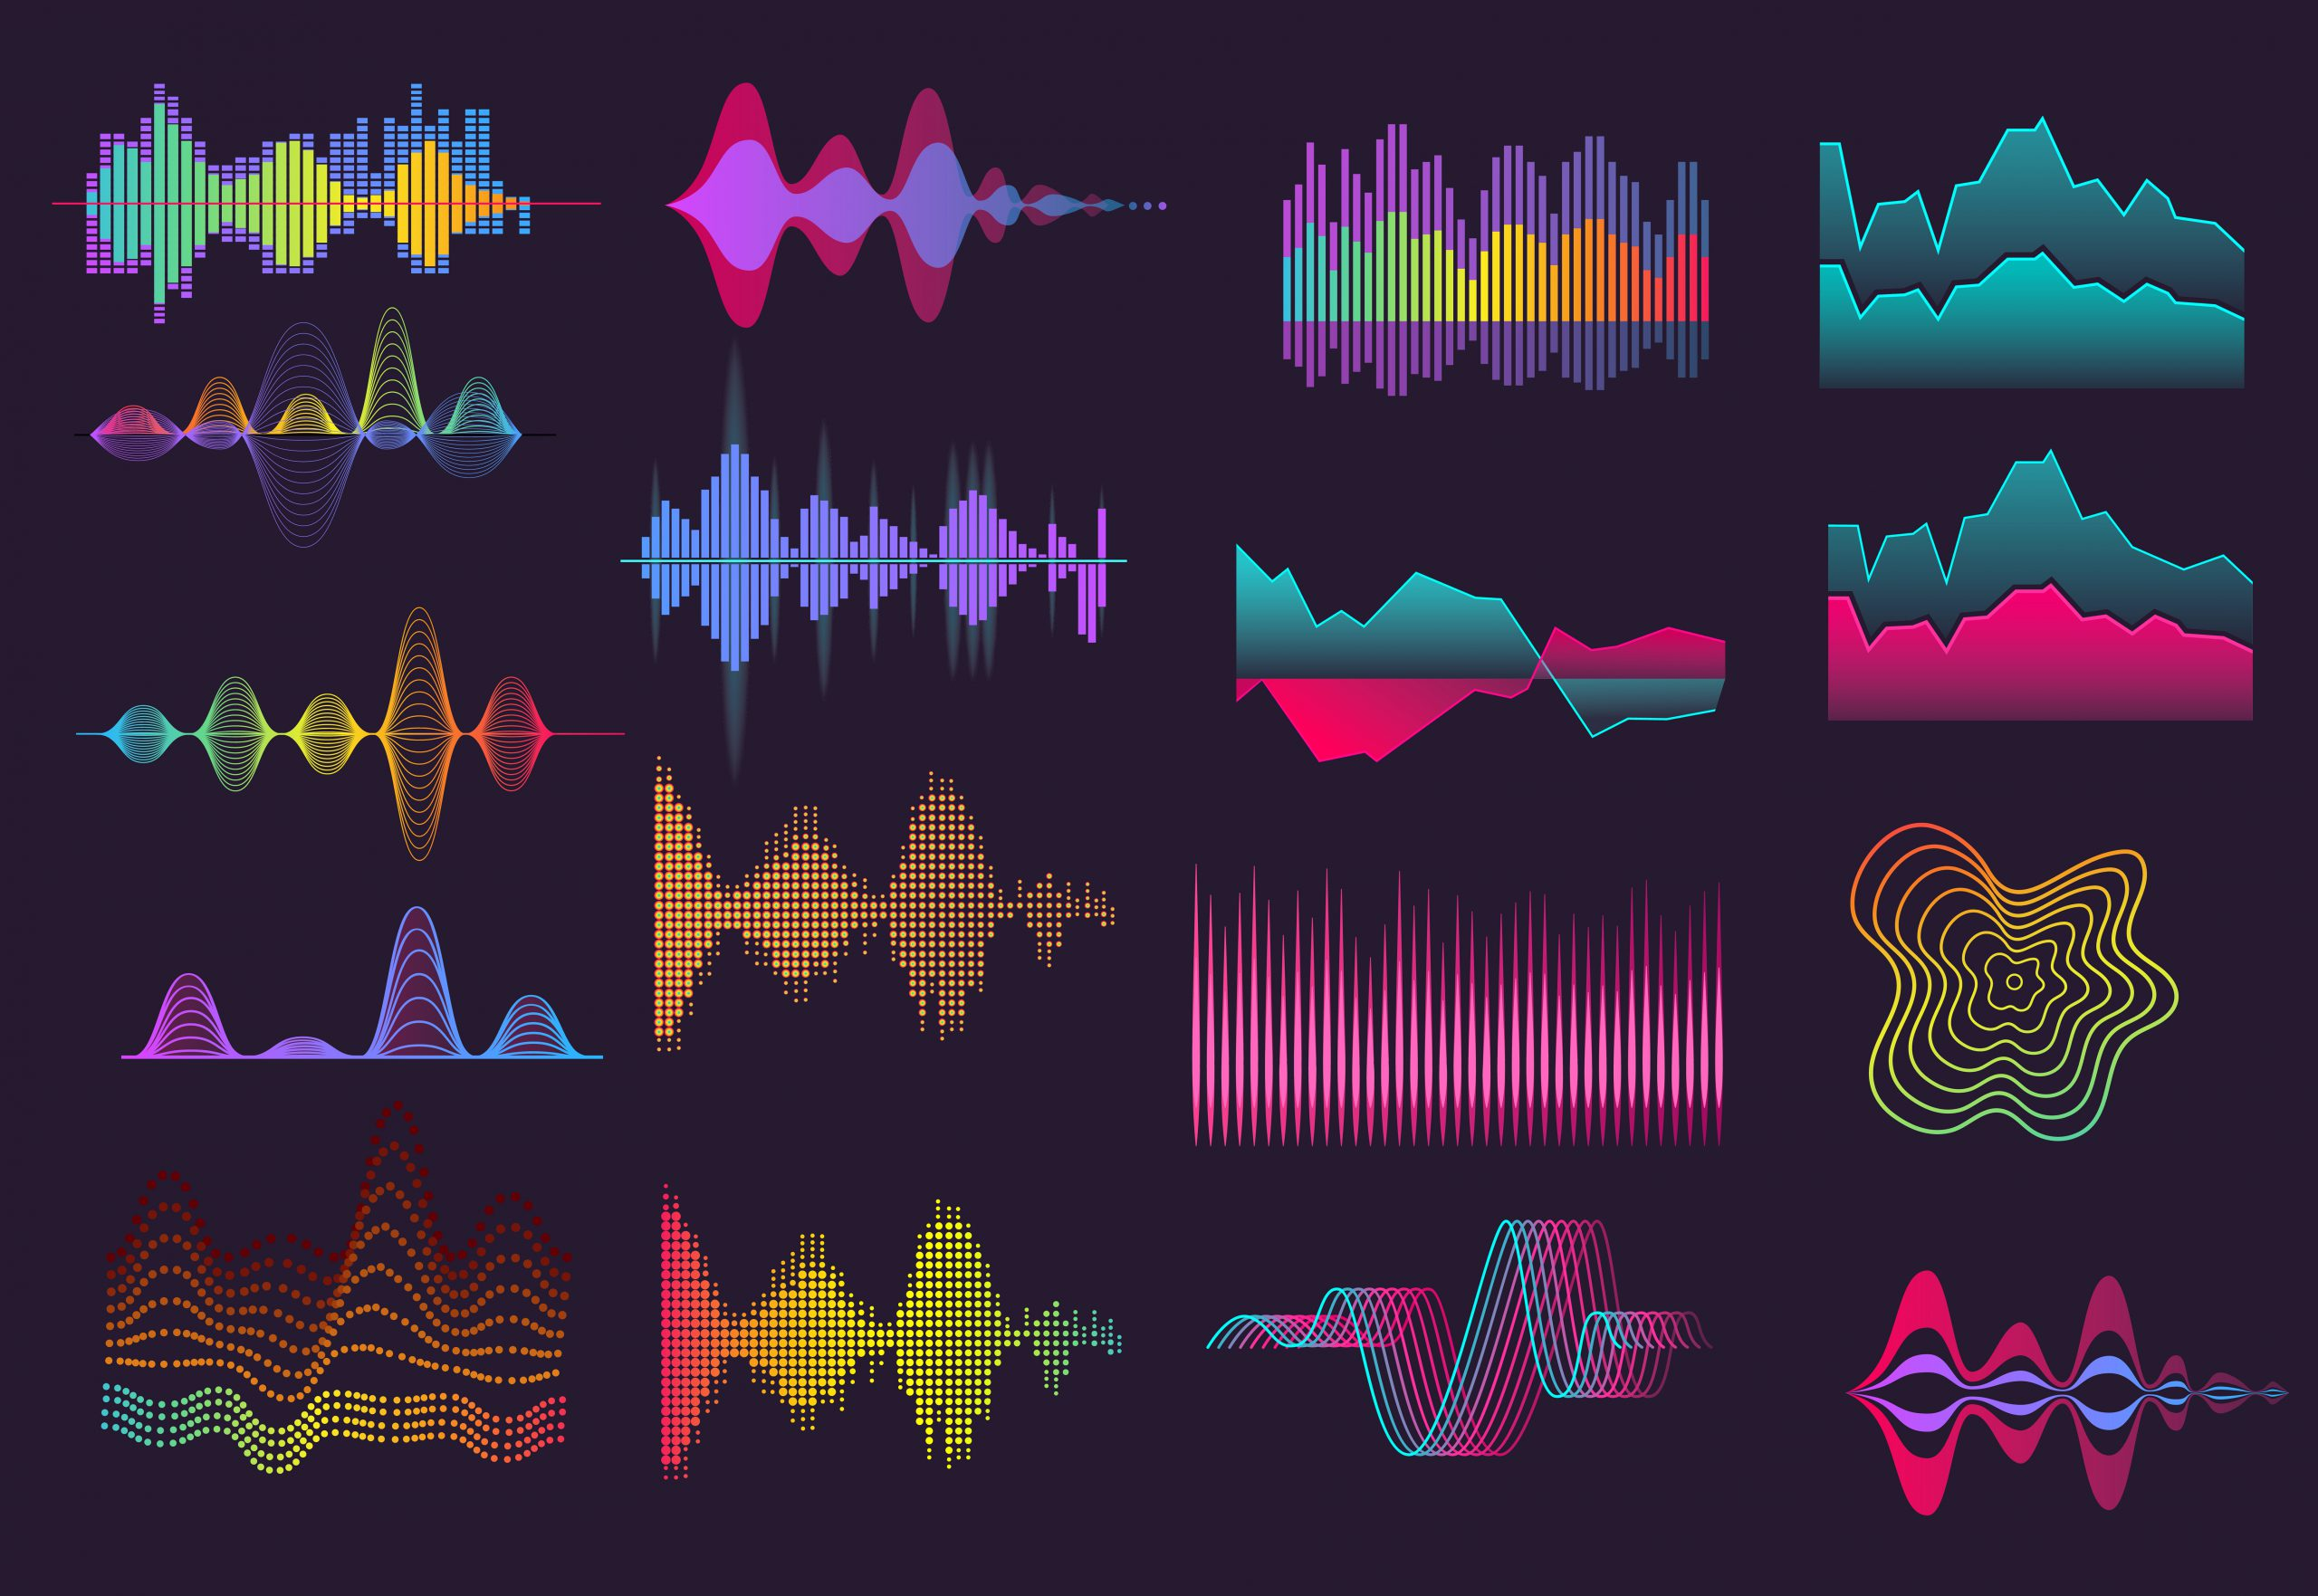 Music vector created by pch.vector - www.freepik.com